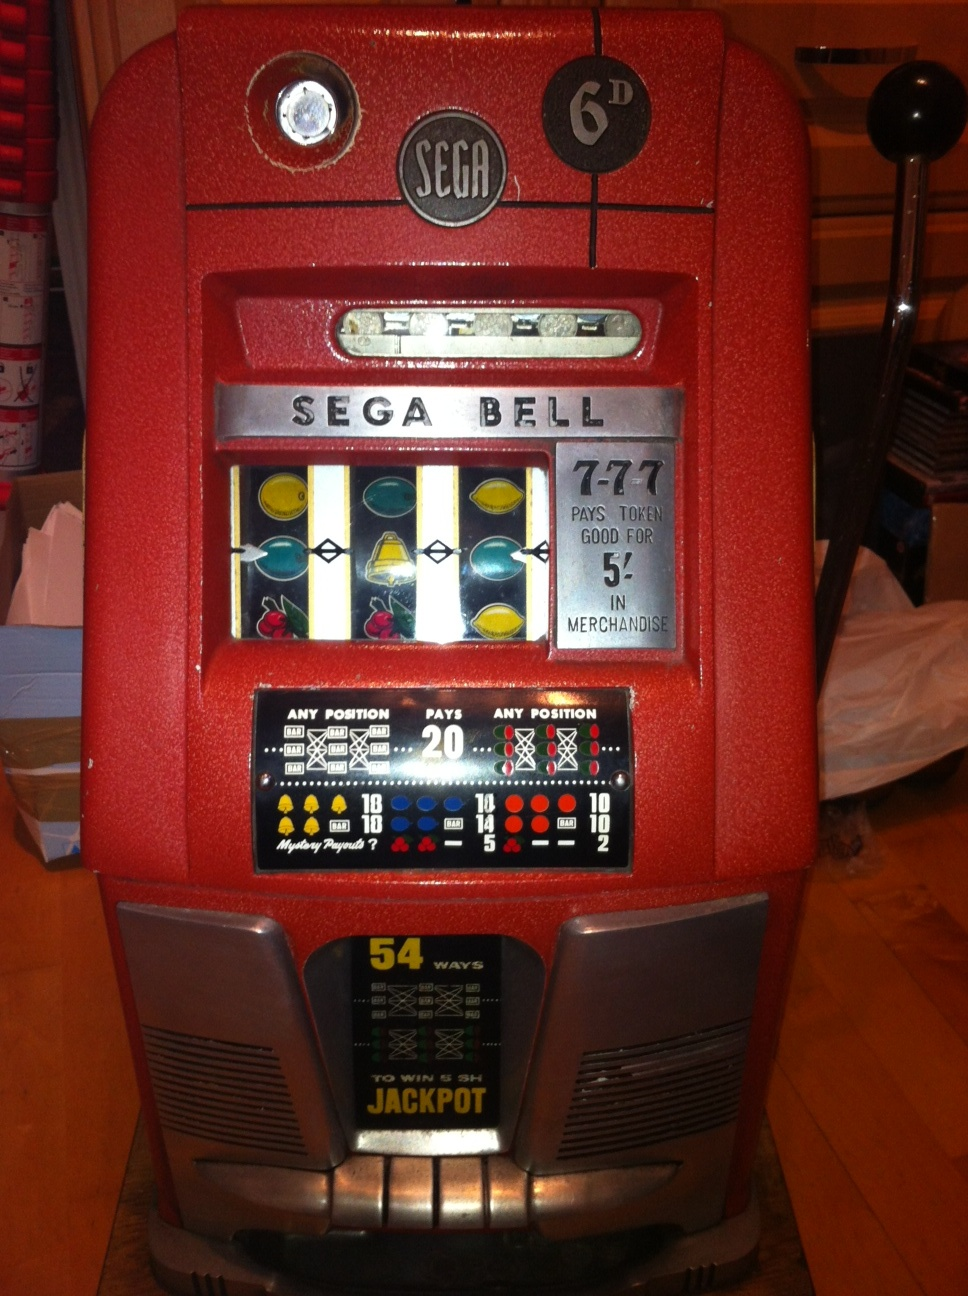 Sega Bell 6 p U.K. model with Gold Award and 54 way awards.JPG